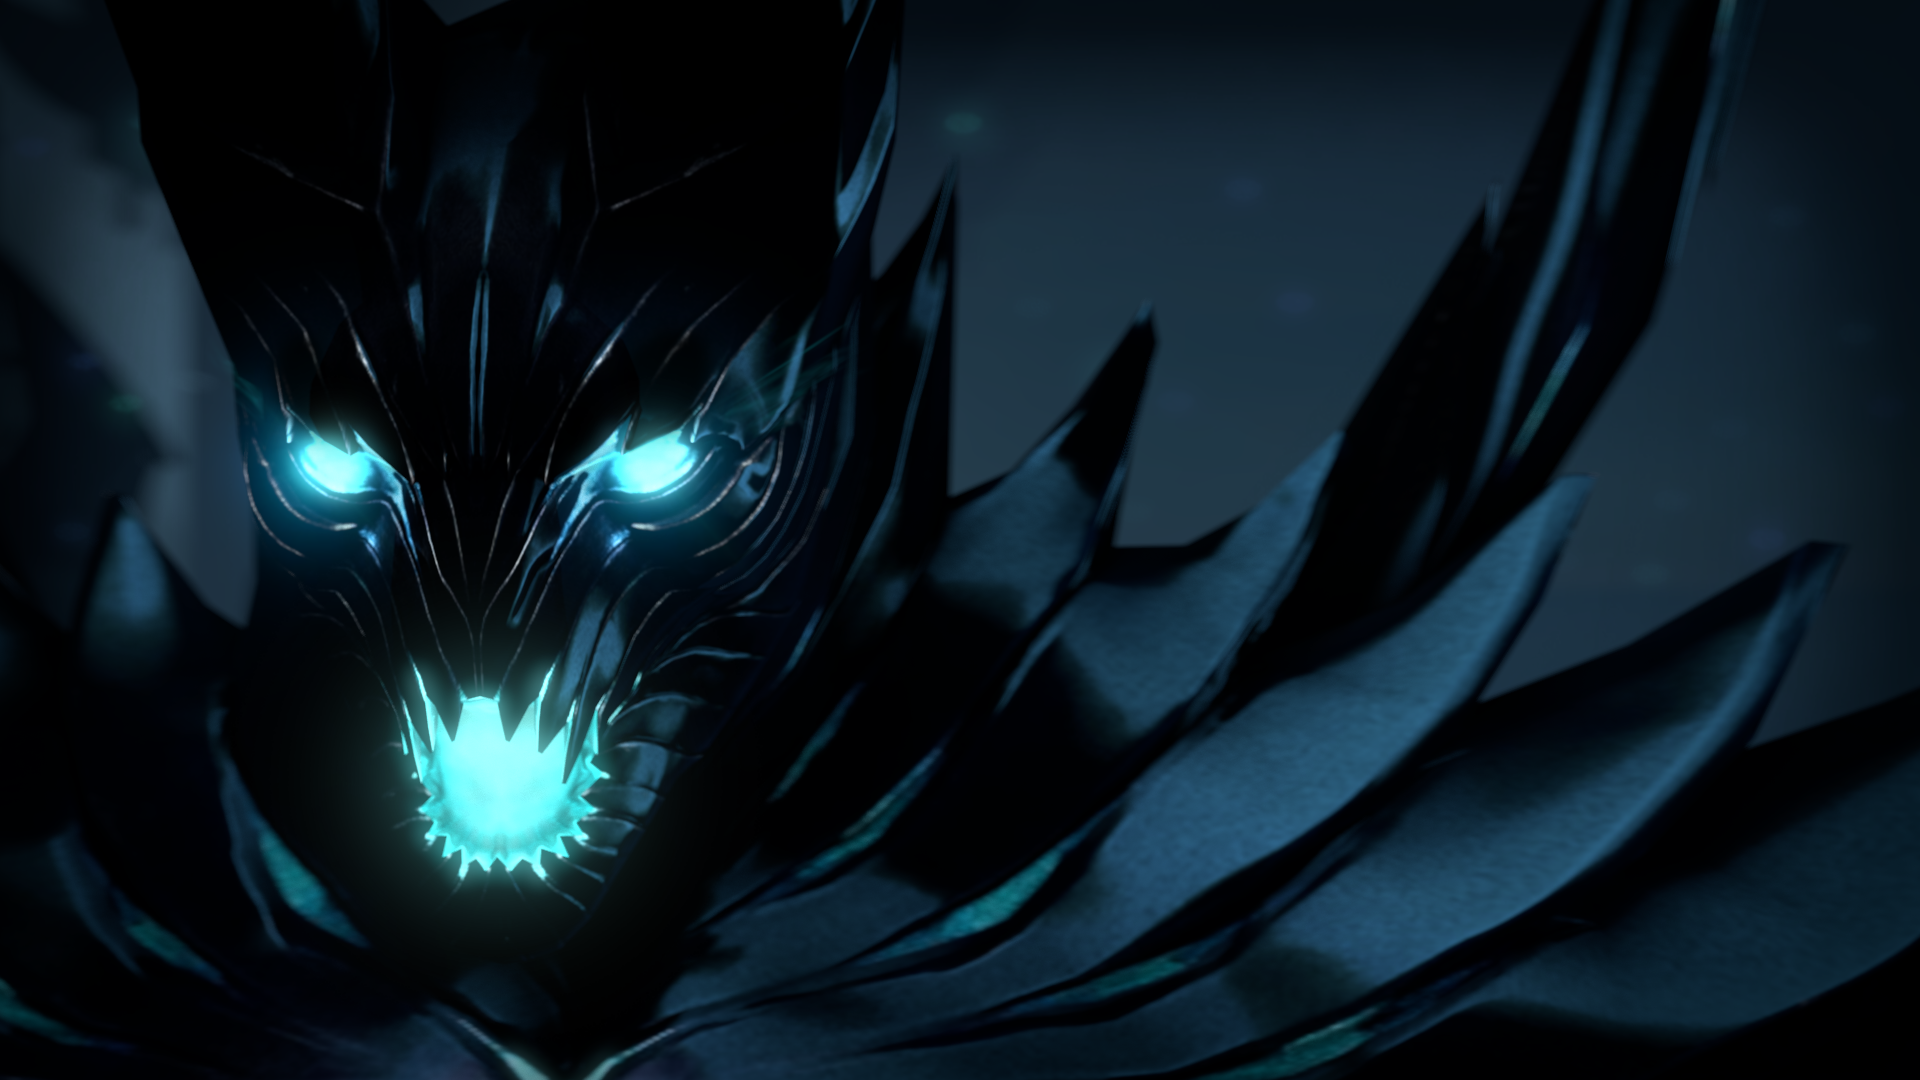 Terrorblade Wallpaper Dota 2 HD Wallpapers 1920x1080